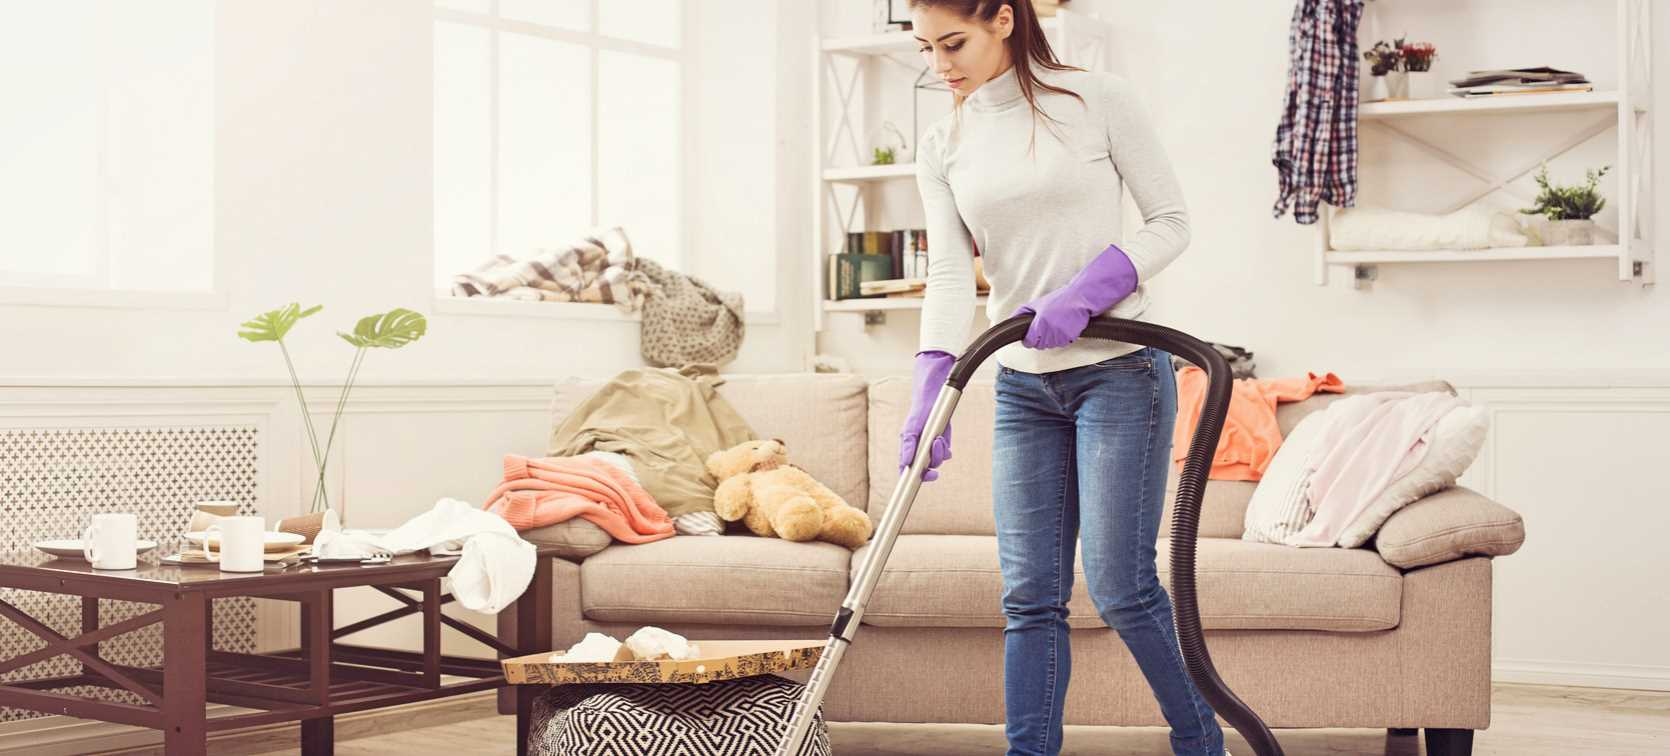 Organizing Your Home One Room at a Time - Waste Removal in Springfield MO